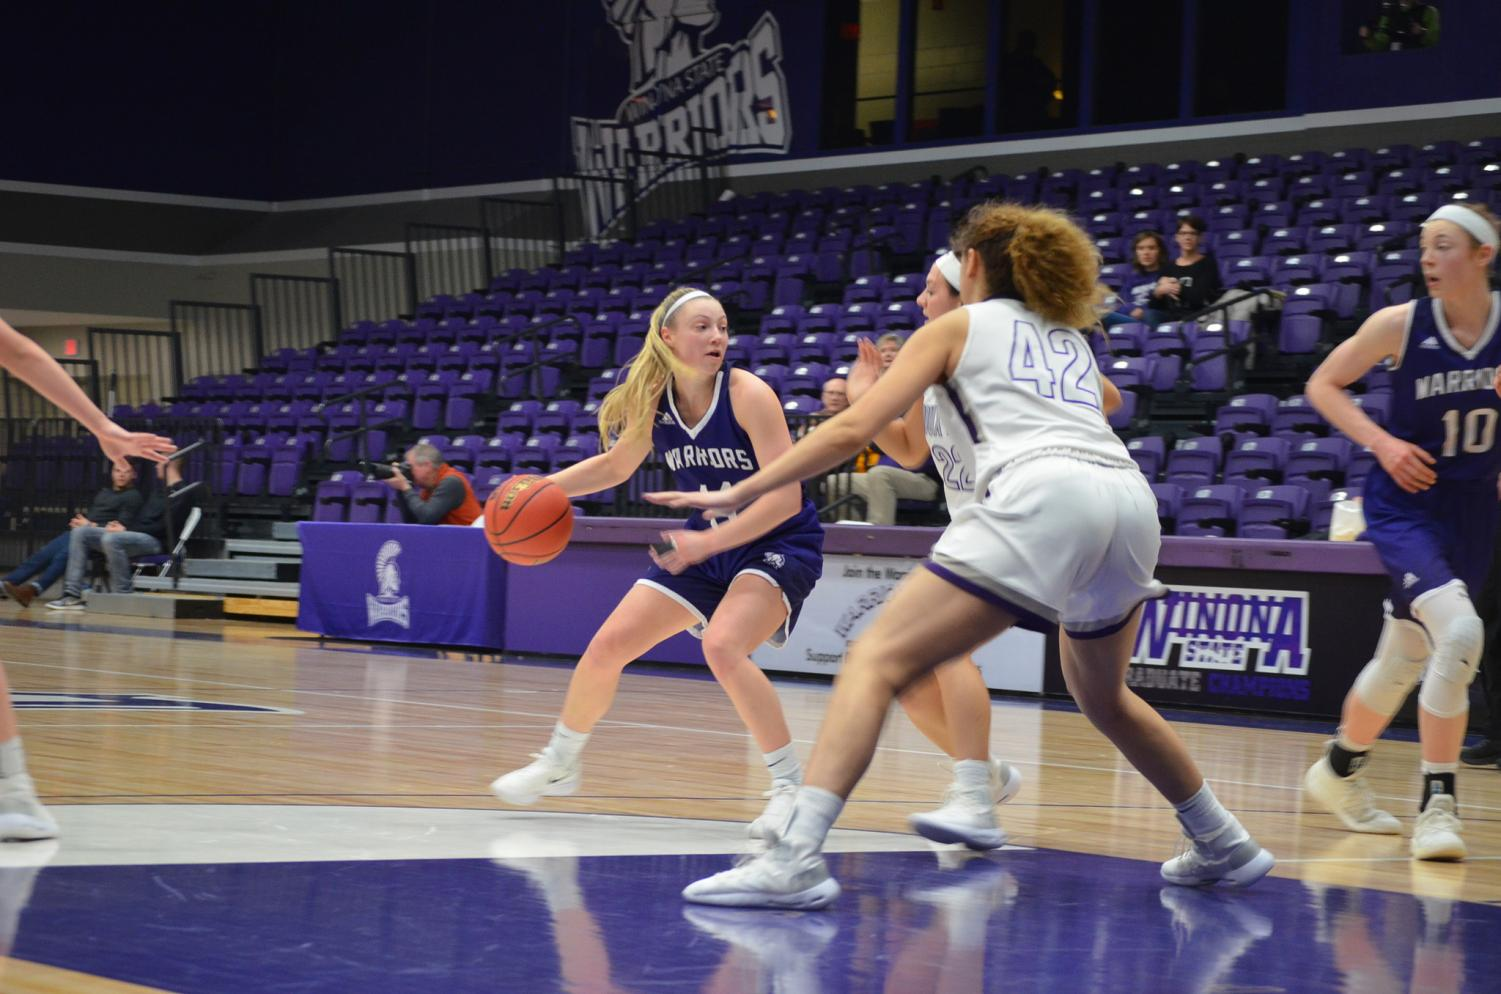 Sophomore guard Emily Kieck looks to pass the ball to a teammate during a game against the University of Sioux Falls on Saturday, January 26. The team took away two wins against Southwest Minnesota State  University and Sioux Falls scoring 71-69 and 64-50, bringing their season record to 10 wins and eight losses.